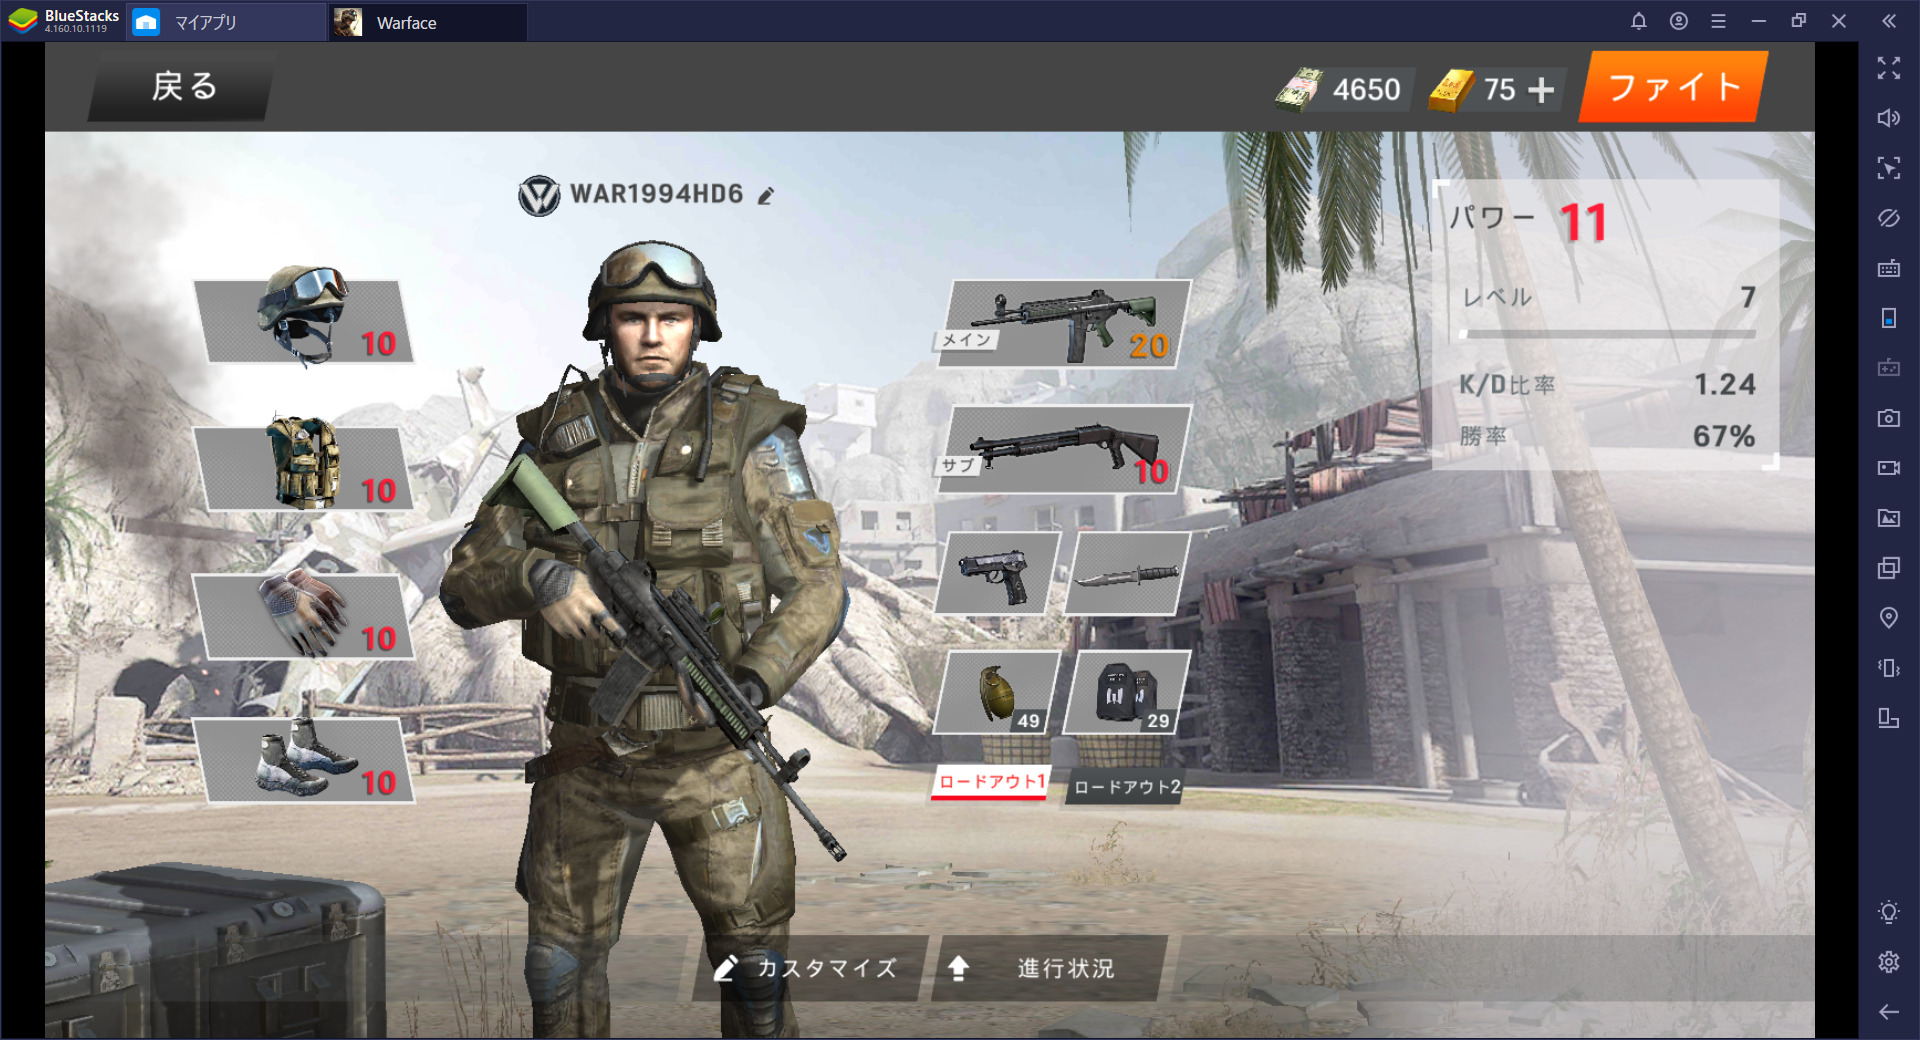 BlueStacksを使ってPCで『Warface: Global Operations』を遊ぼう